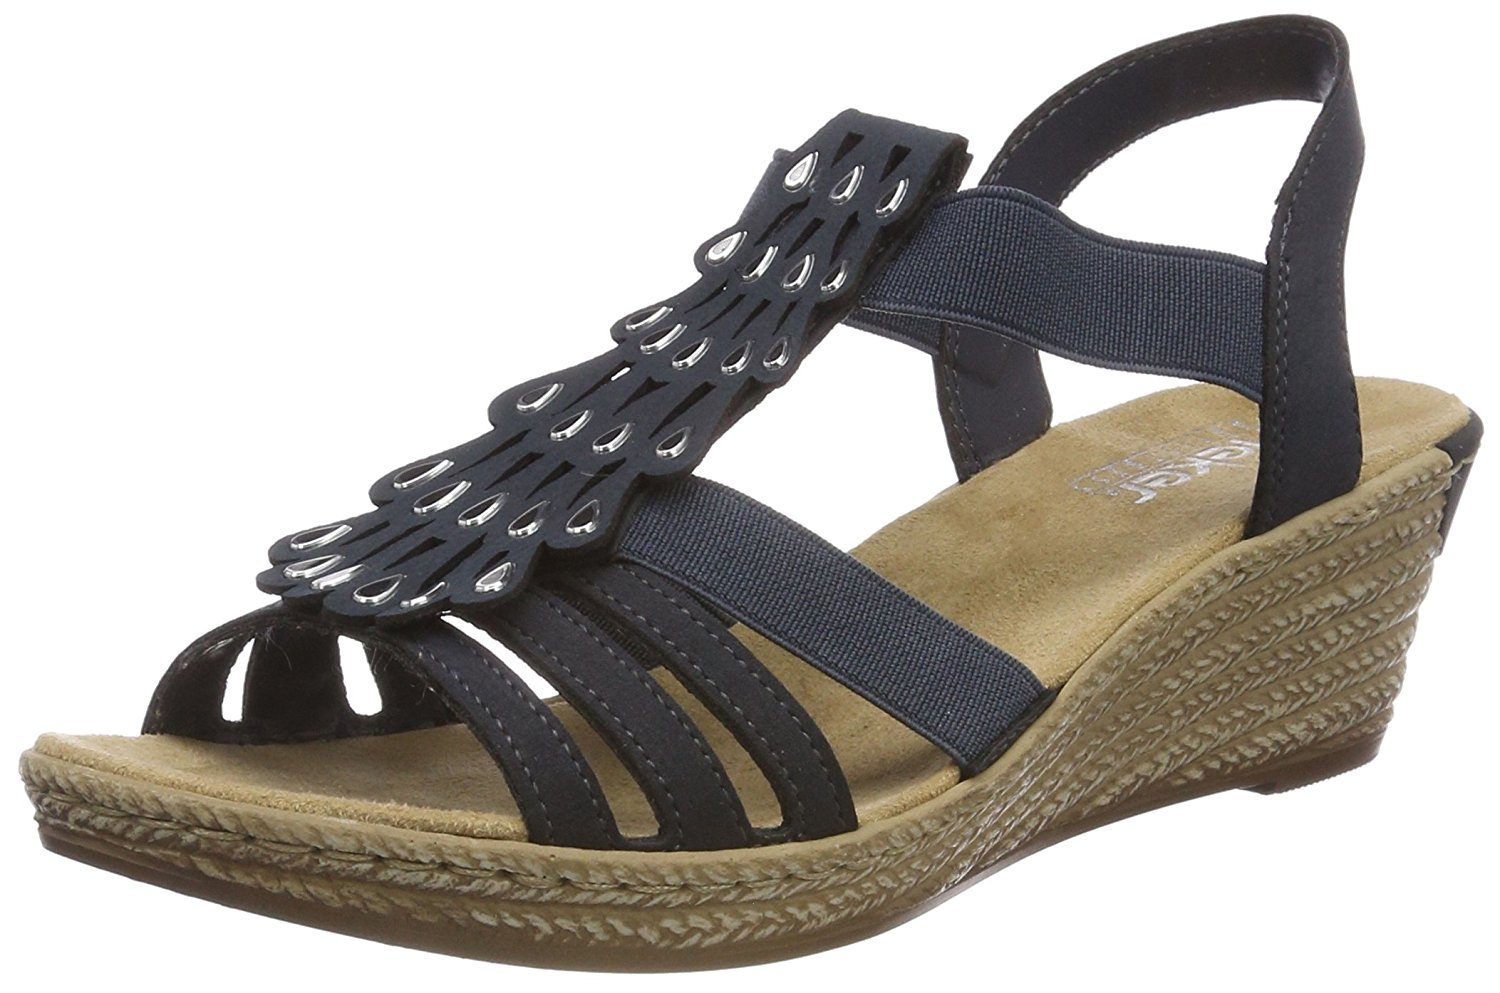 68c5853bb58598 Get Quotations · Rieker Women s Synthetic Sandals